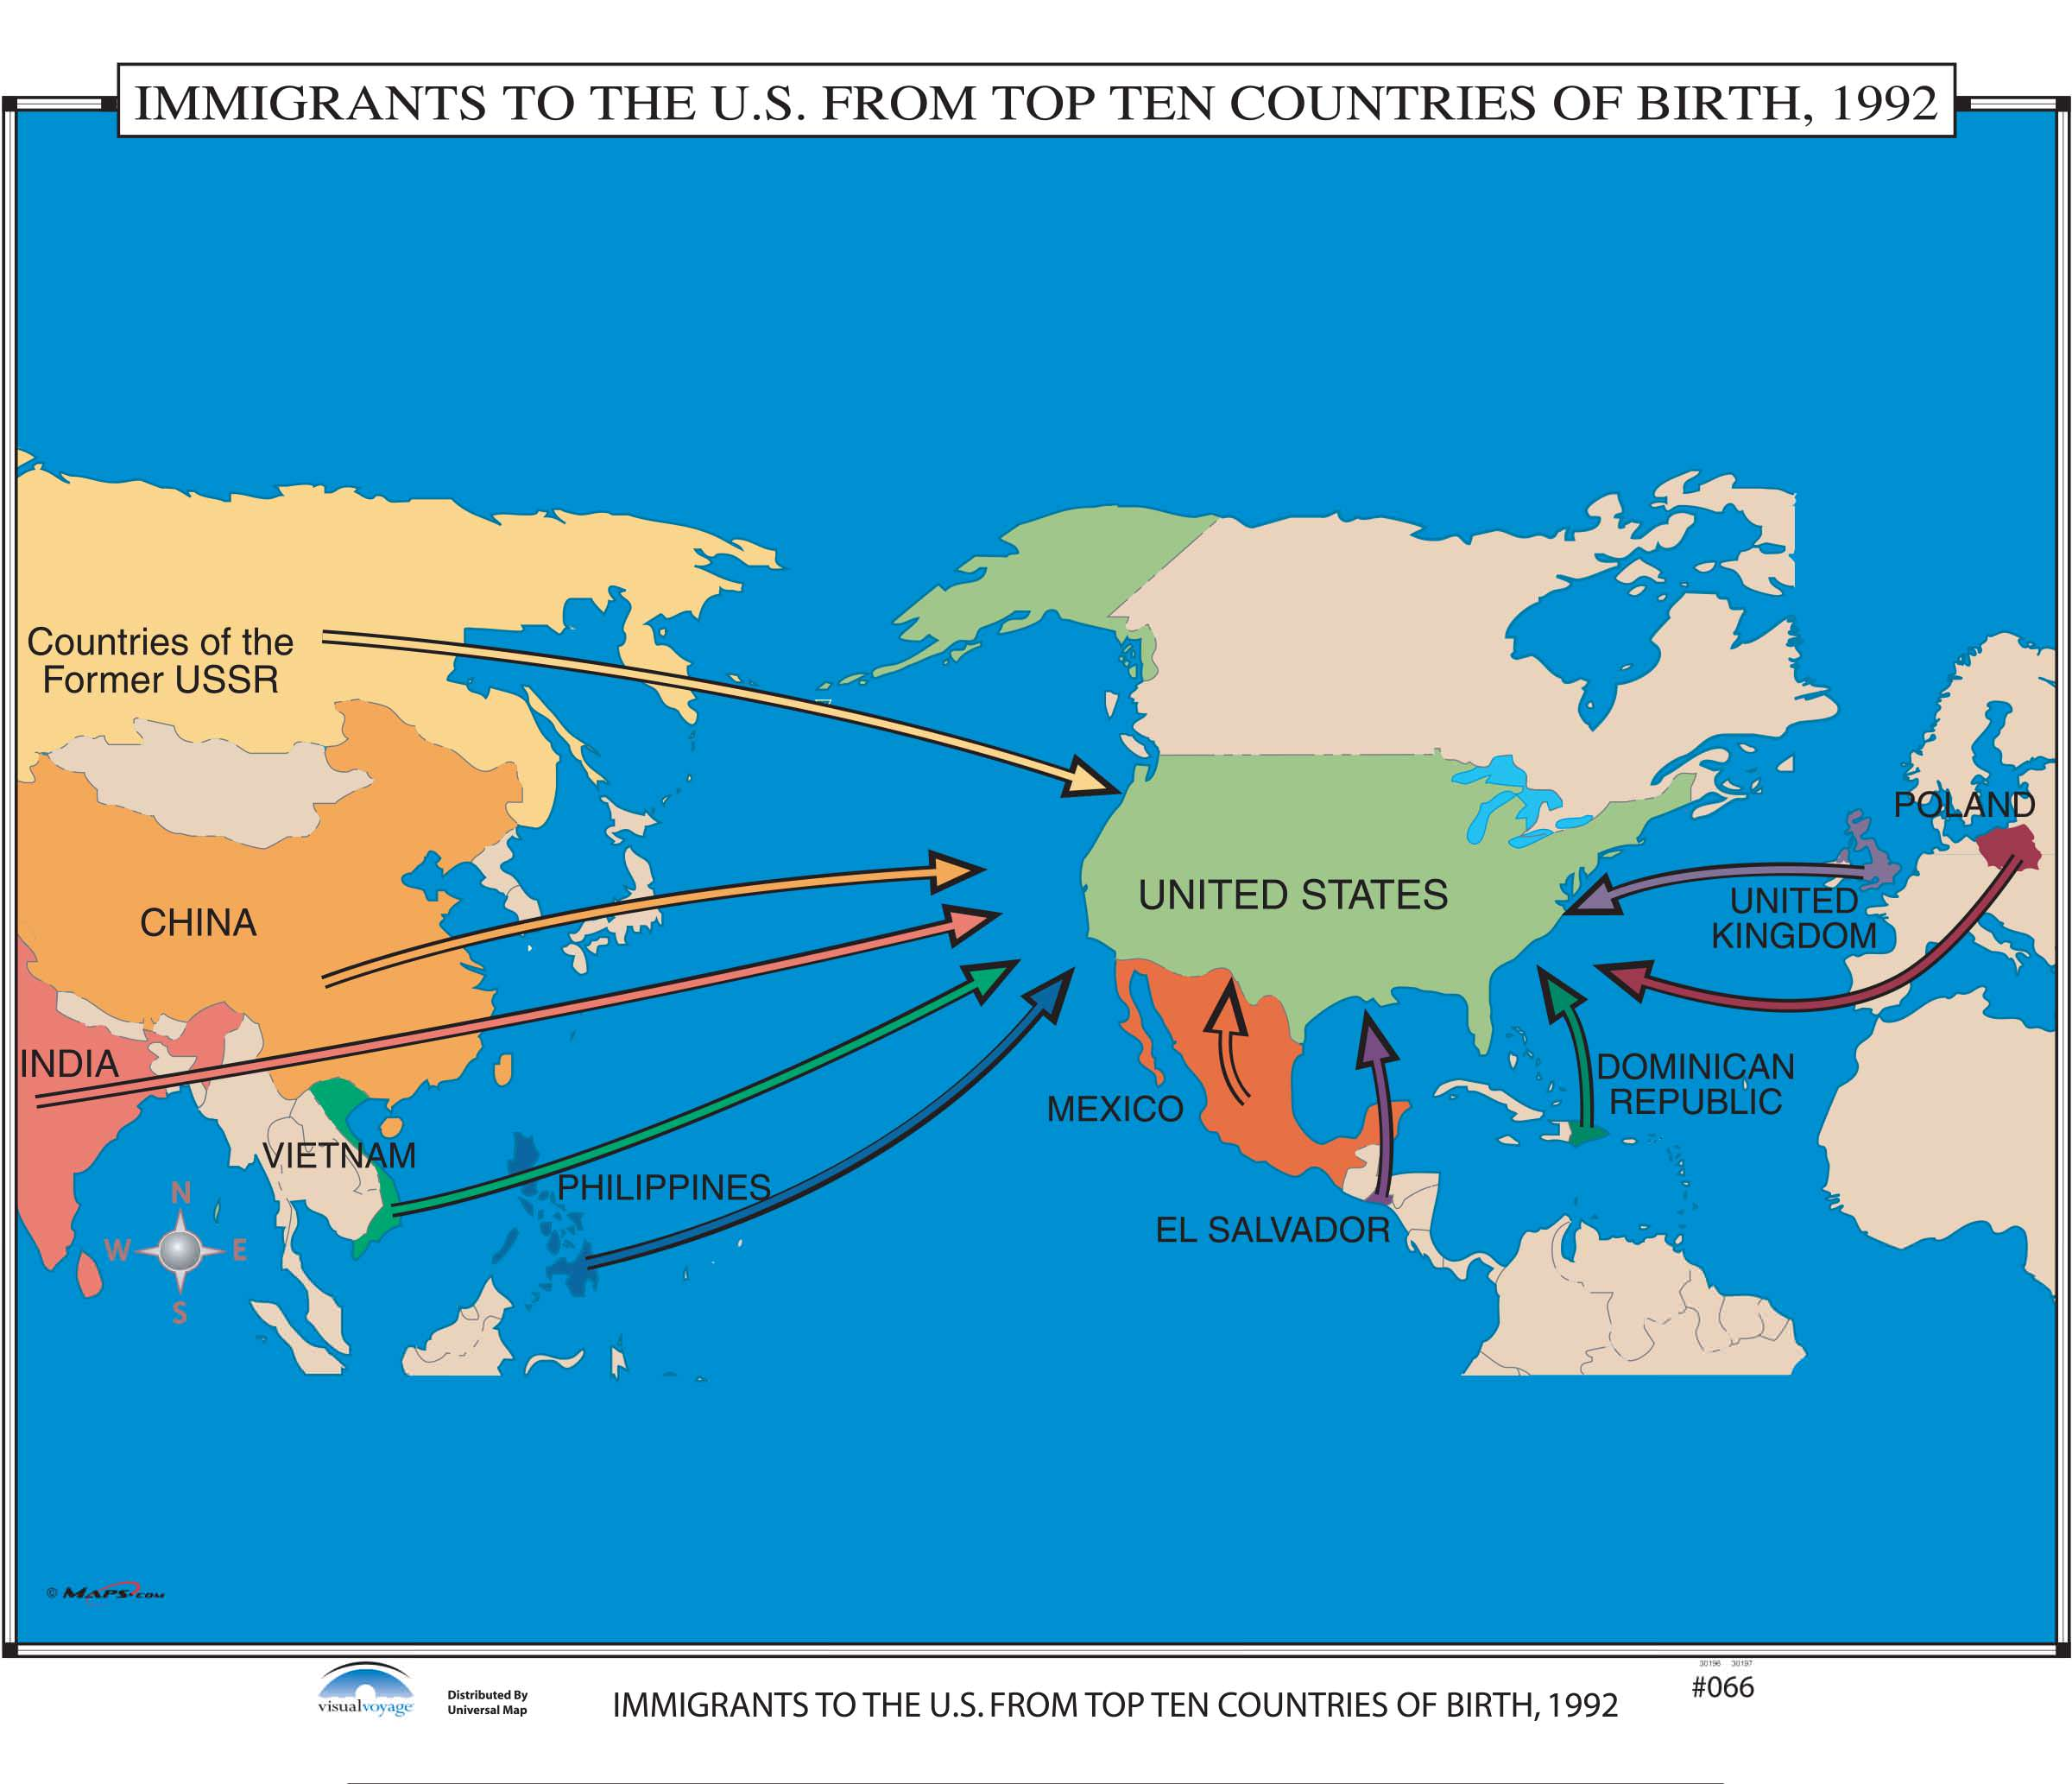 066 Immigrants To The Us From Top Ten Countries Of Birth 1992 - Map-of-immigrants-in-the-us